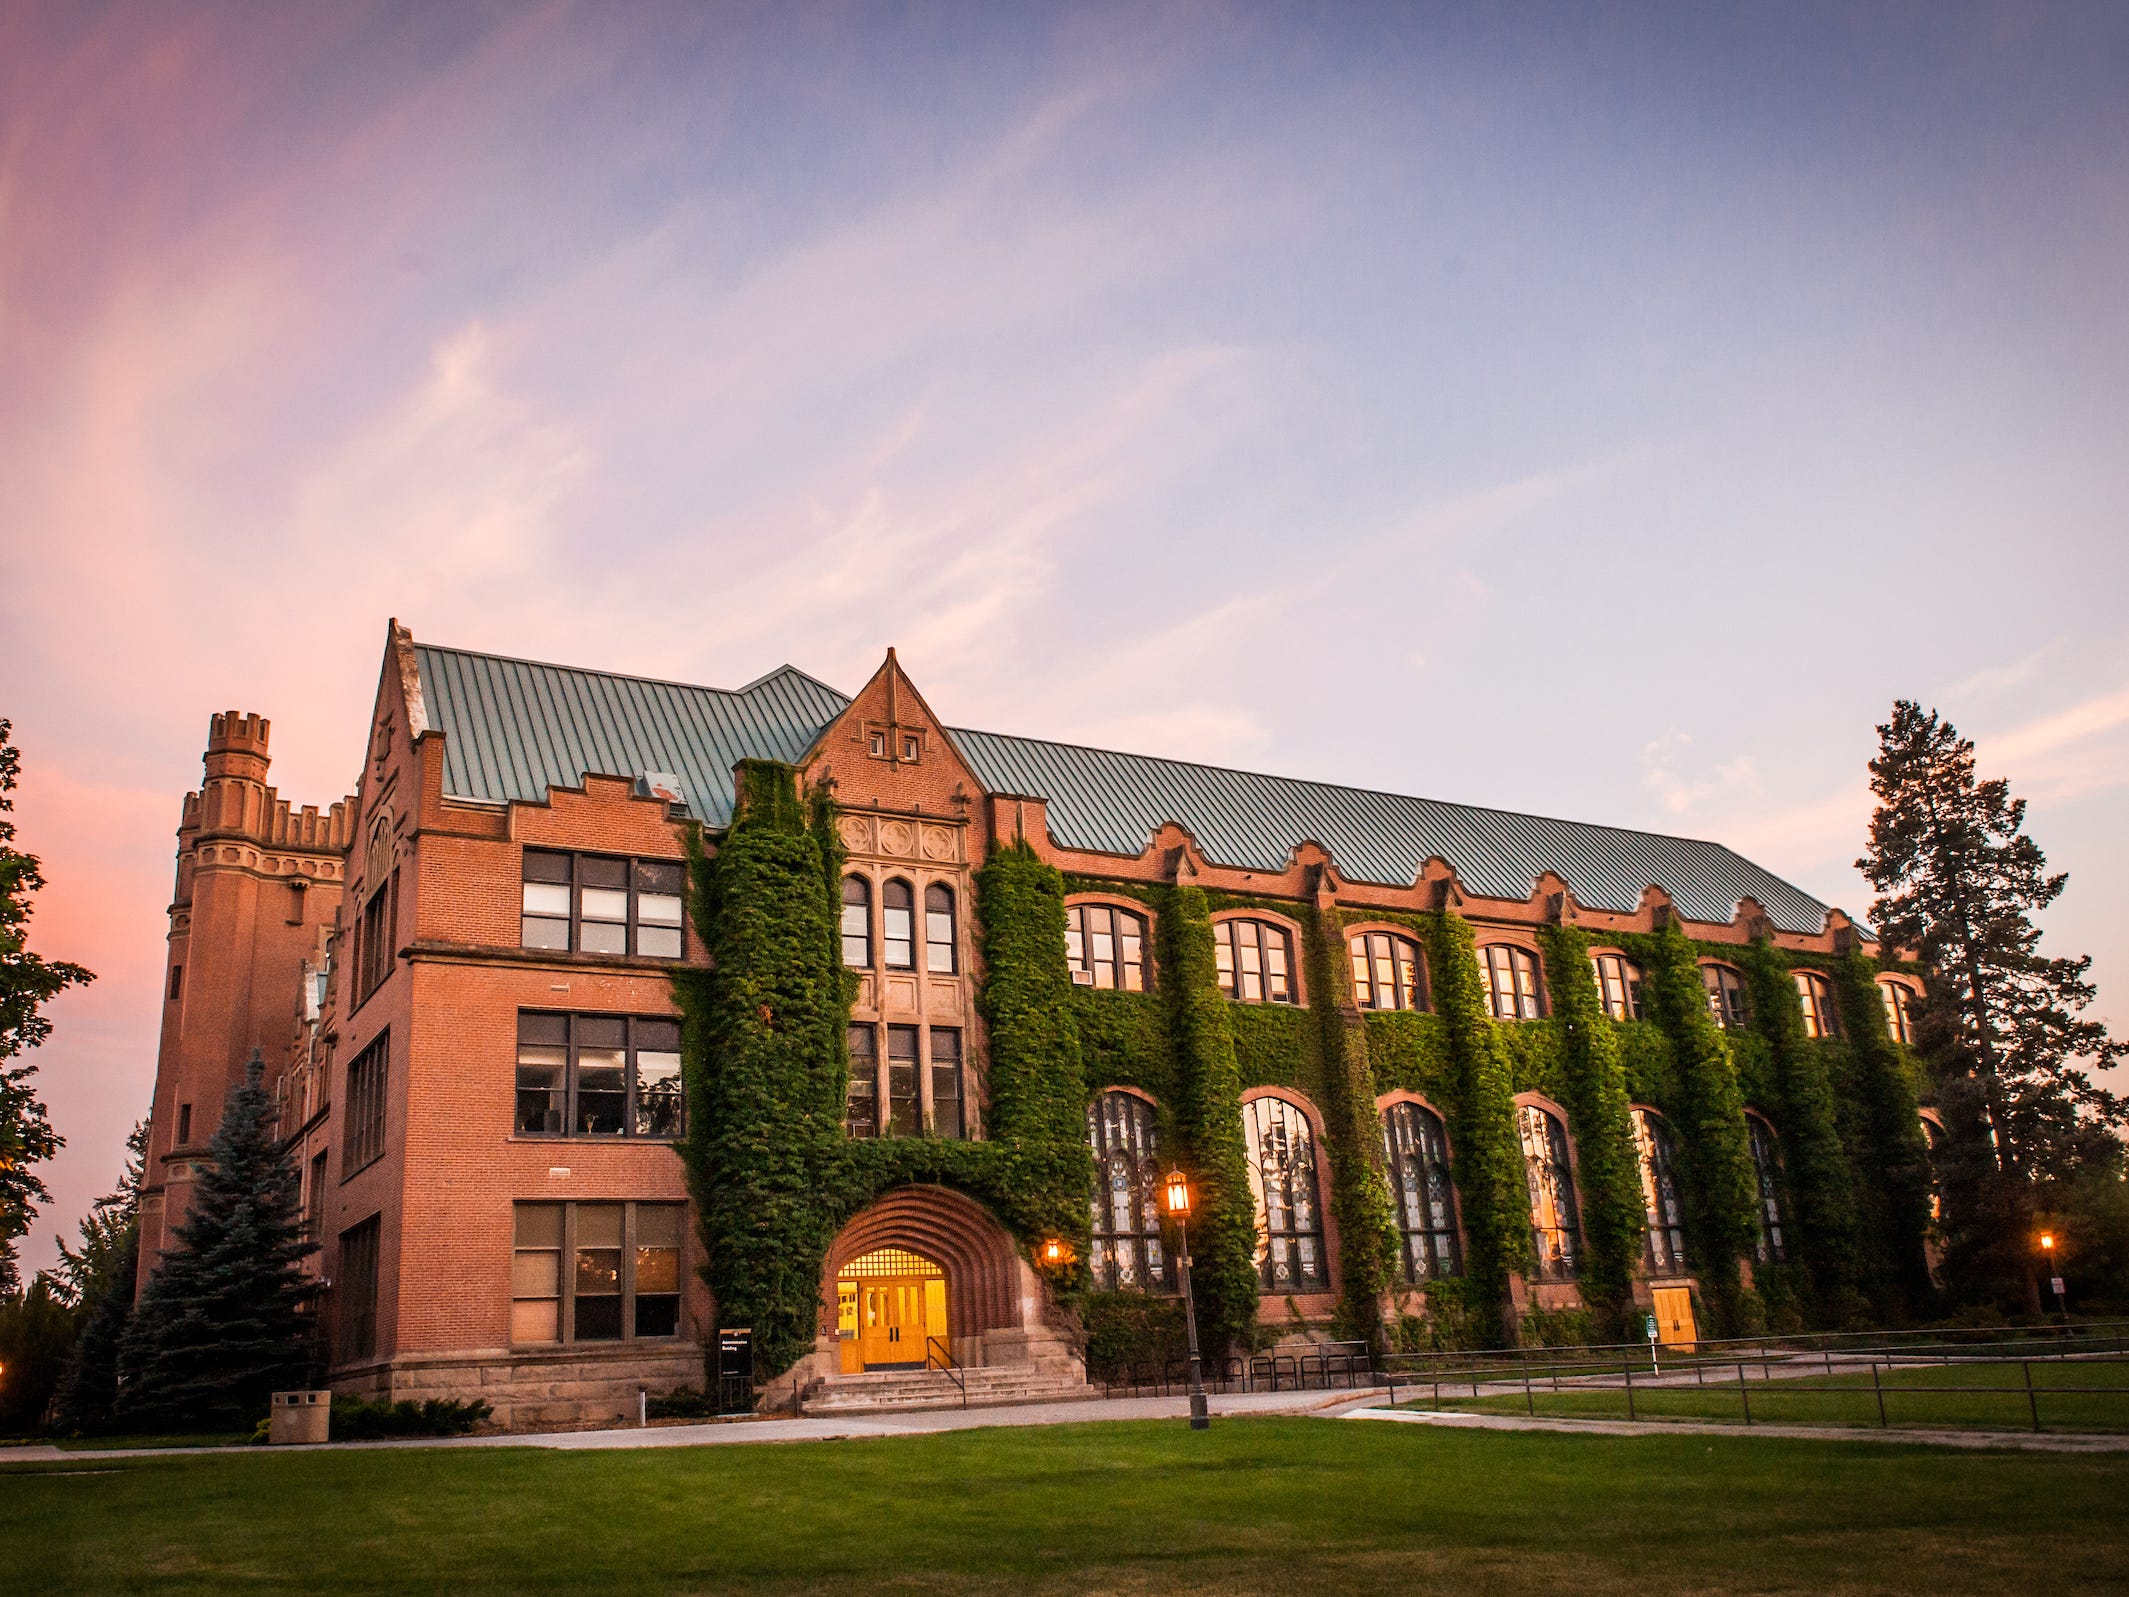 Idaho: The stained glass windows and Tudor-style archways in the University of Idaho's historic Administration Building only add to its charm.